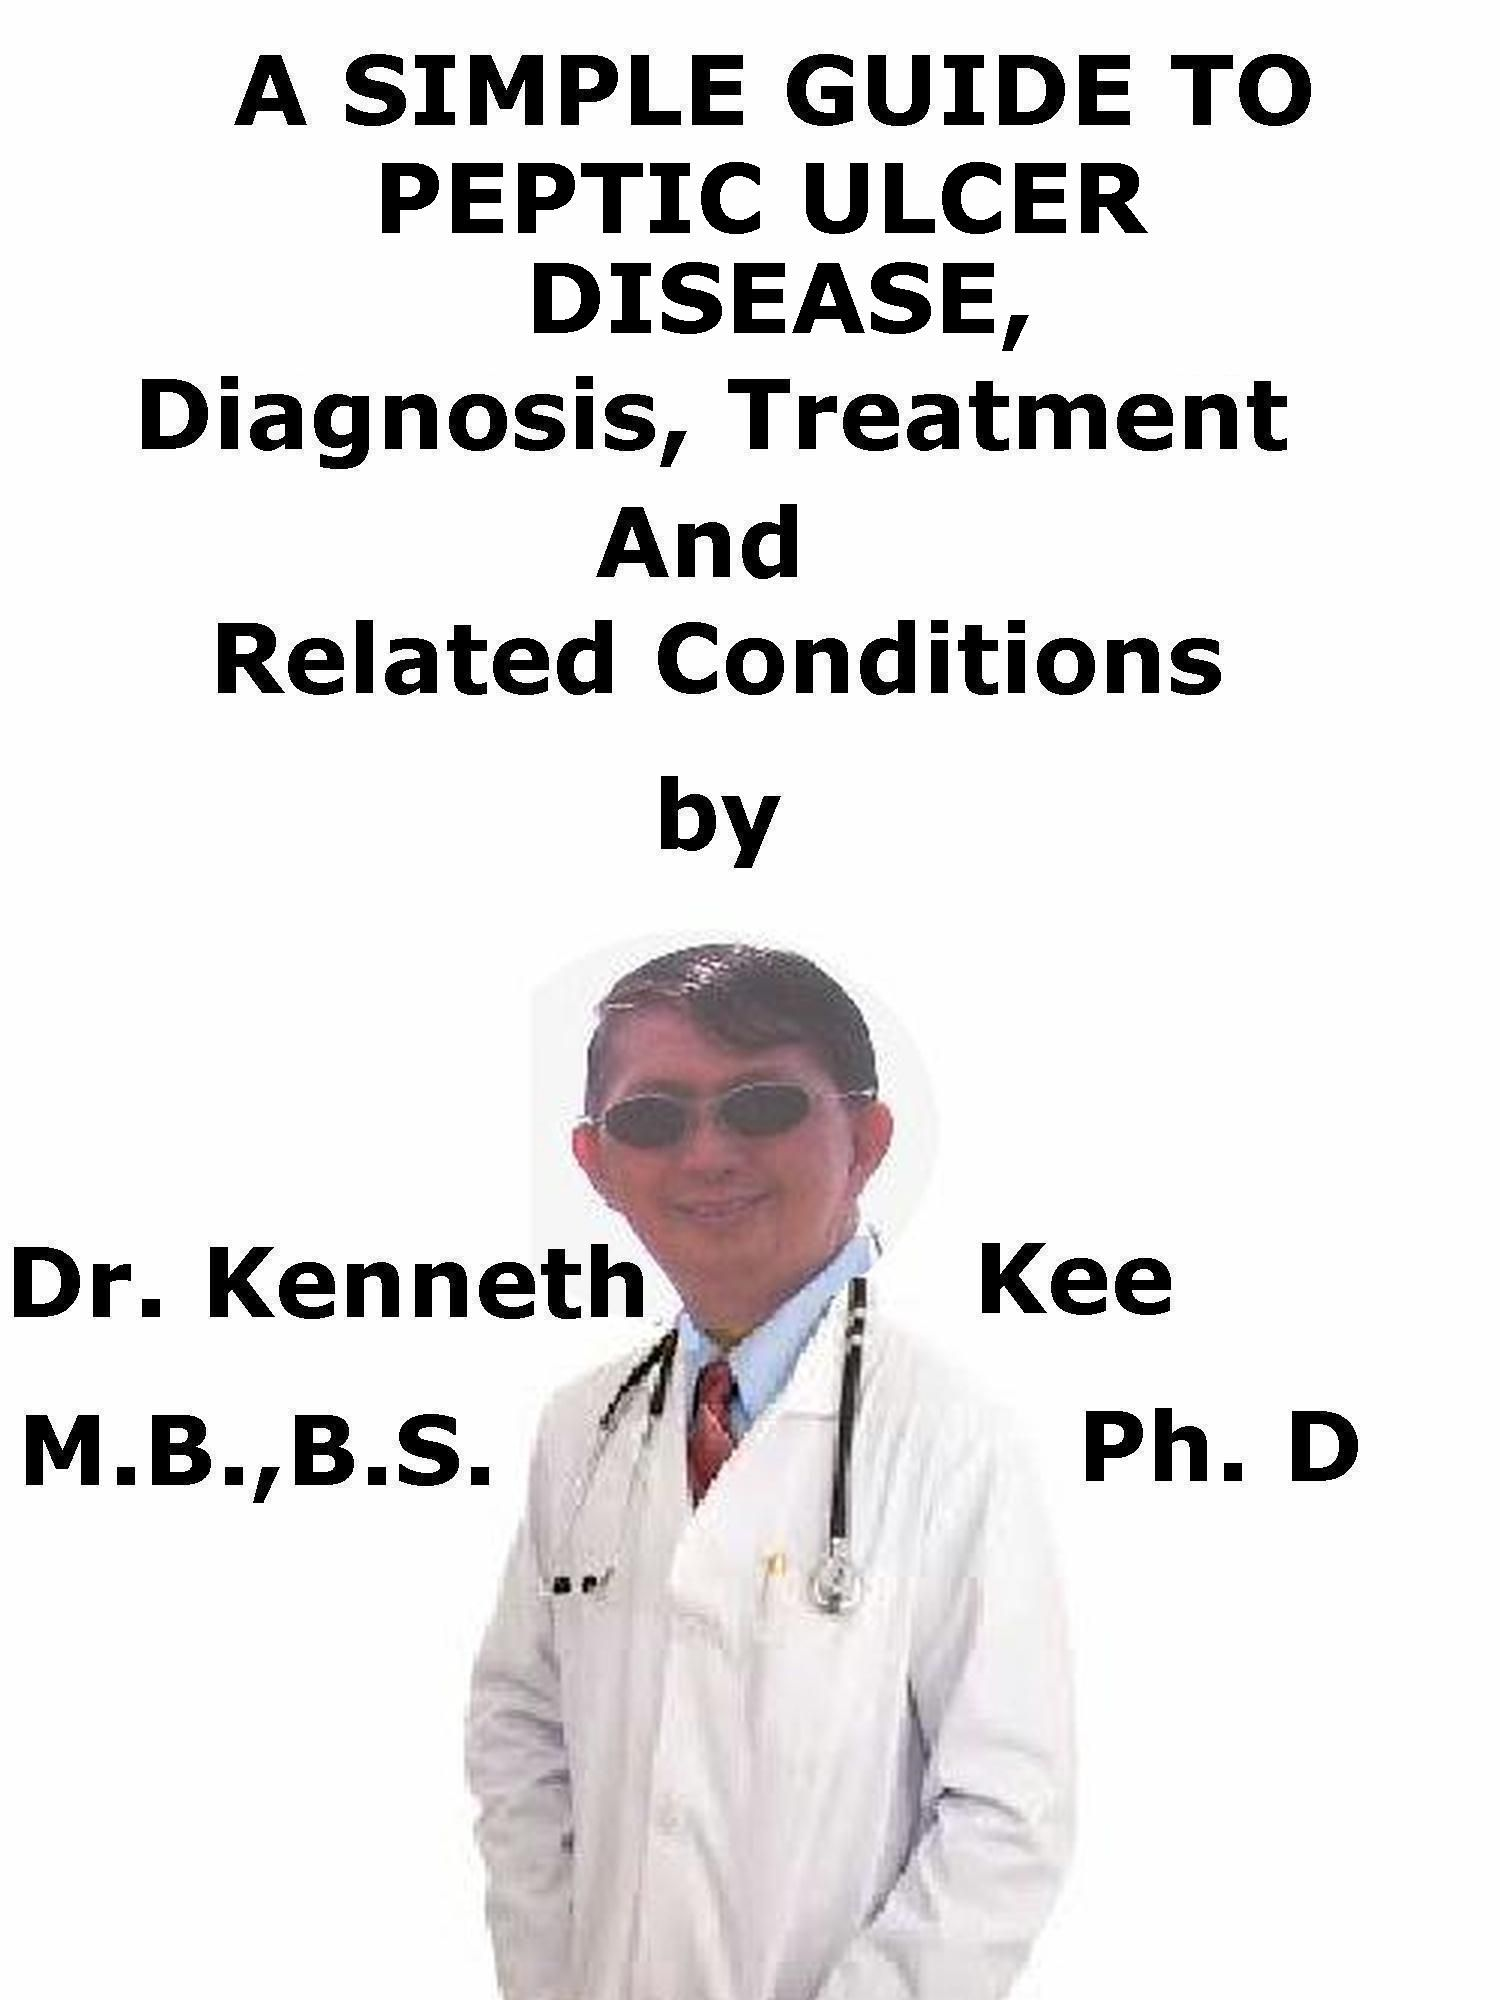 A Simple Guide To Peptic Ulcer Disease, Diagnosis, Treatment And Related Conditions http://amazon.com/dp/B01DAJCLZ4